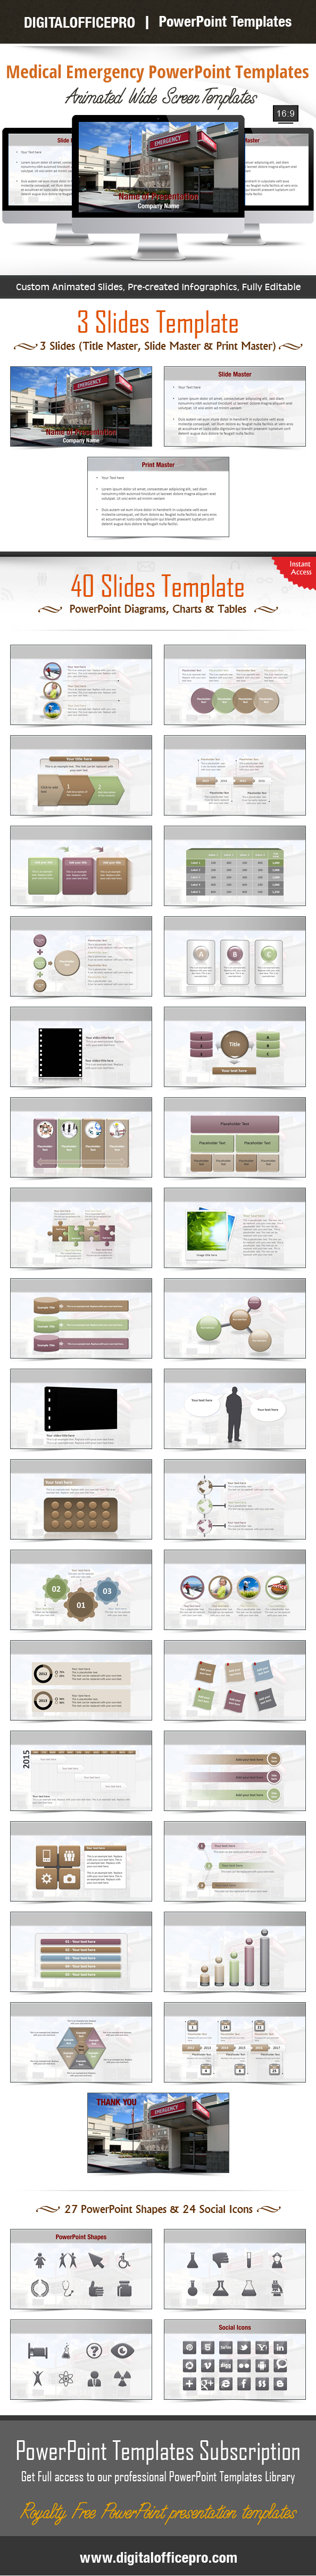 Medical emergency powerpoint template backgrounds pinterest template impress and engage your audience with medical emergency powerpoint template and medical emergency powerpoint backgrounds from toneelgroepblik